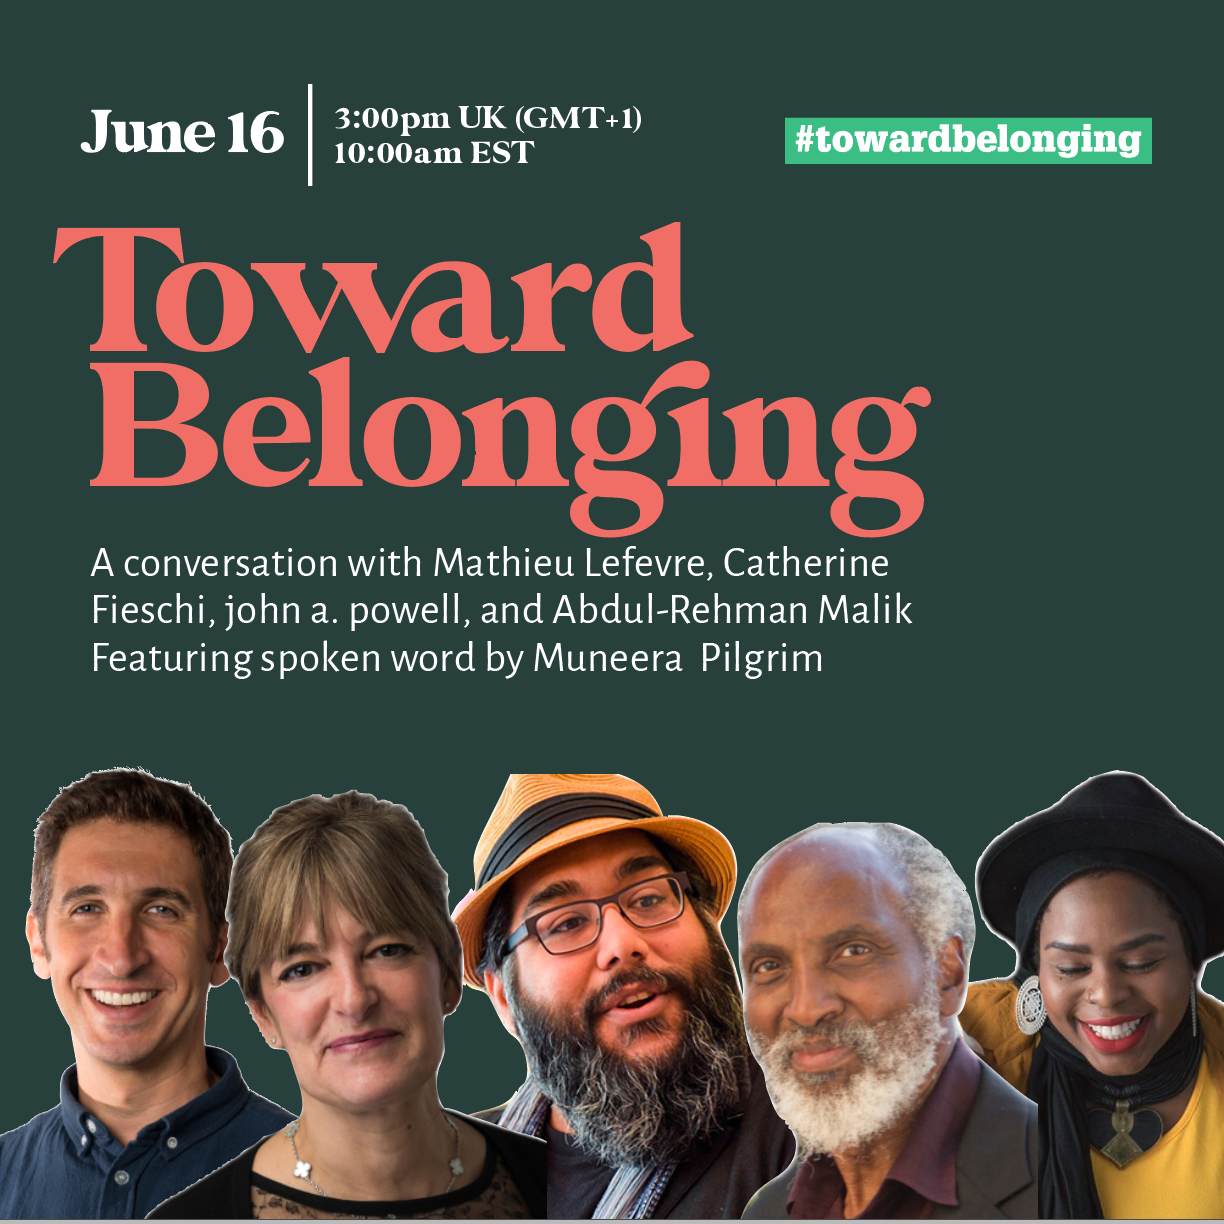 Dark green graphic with images of 5 people - speakers for the Toward Belonging livestream on June 16